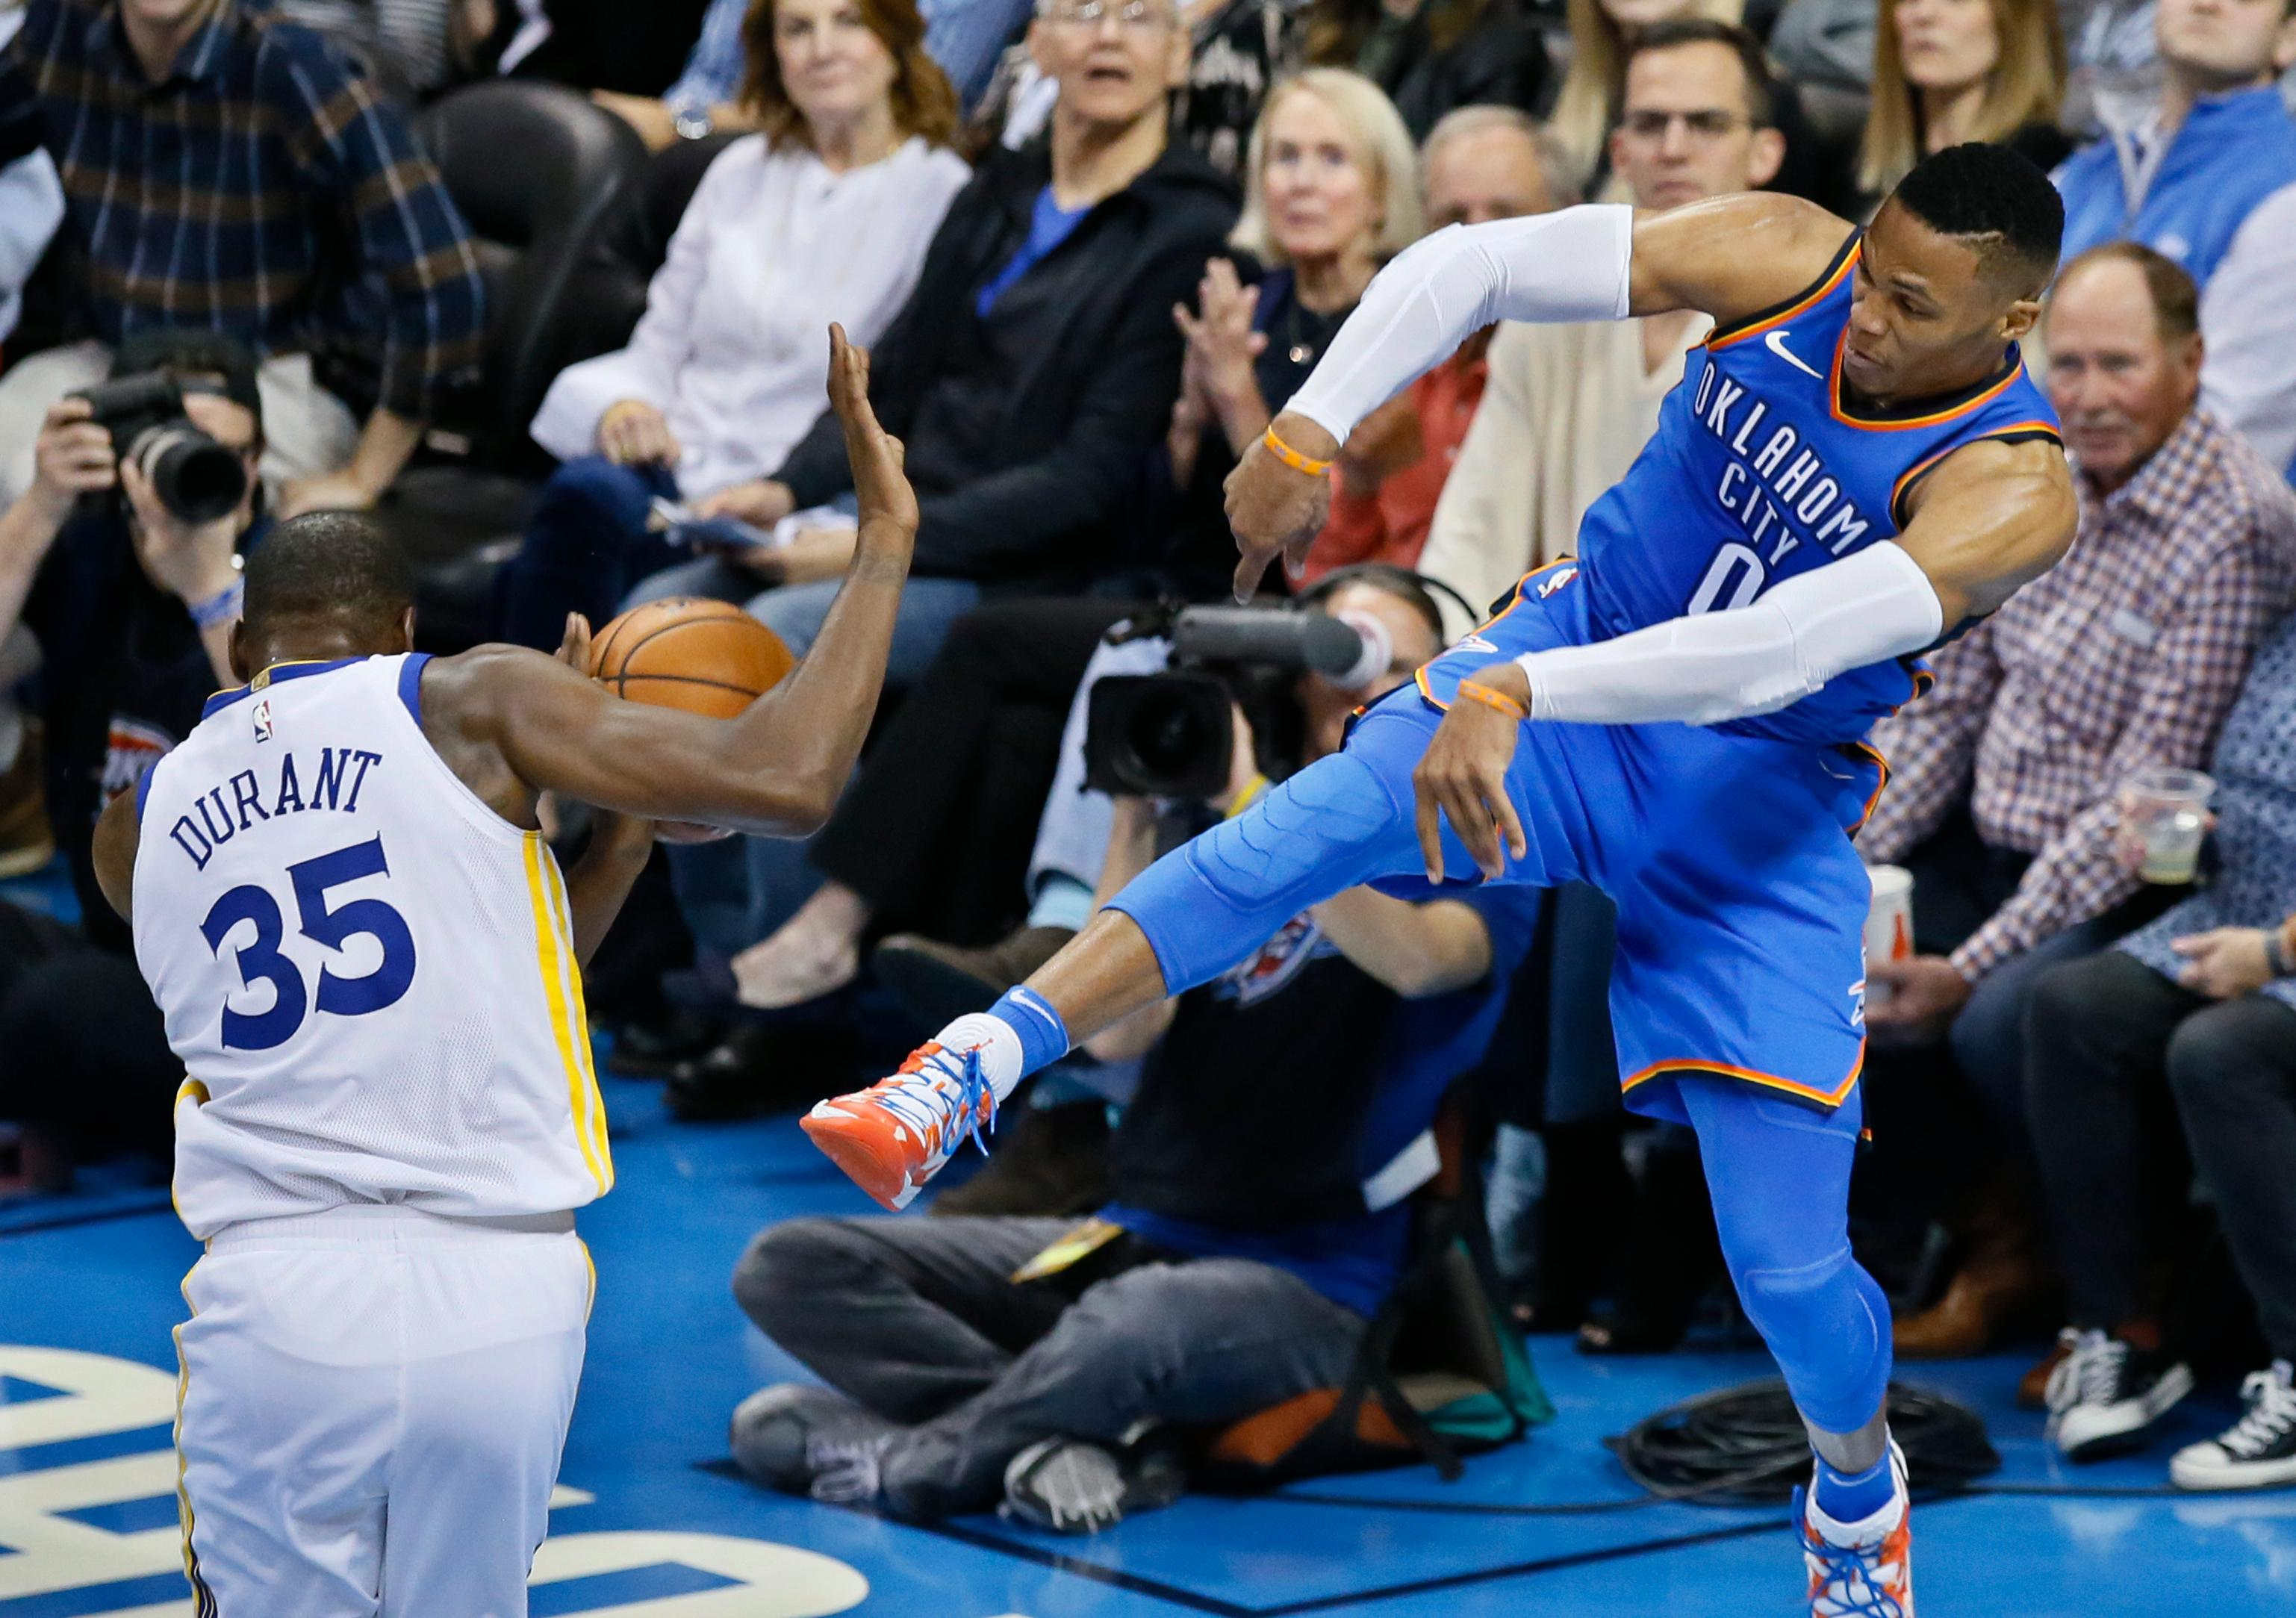 Oklahoma City Thunder guard Russell Westbrook (0) attempts to throw the ball off of Golden State Warriors forward Kevin Durant (35) during the second quarter of an NBA basketball game in Oklahoma City, Wednesday, Nov. 22, 2017. (AP Photo/Sue Ogrocki)